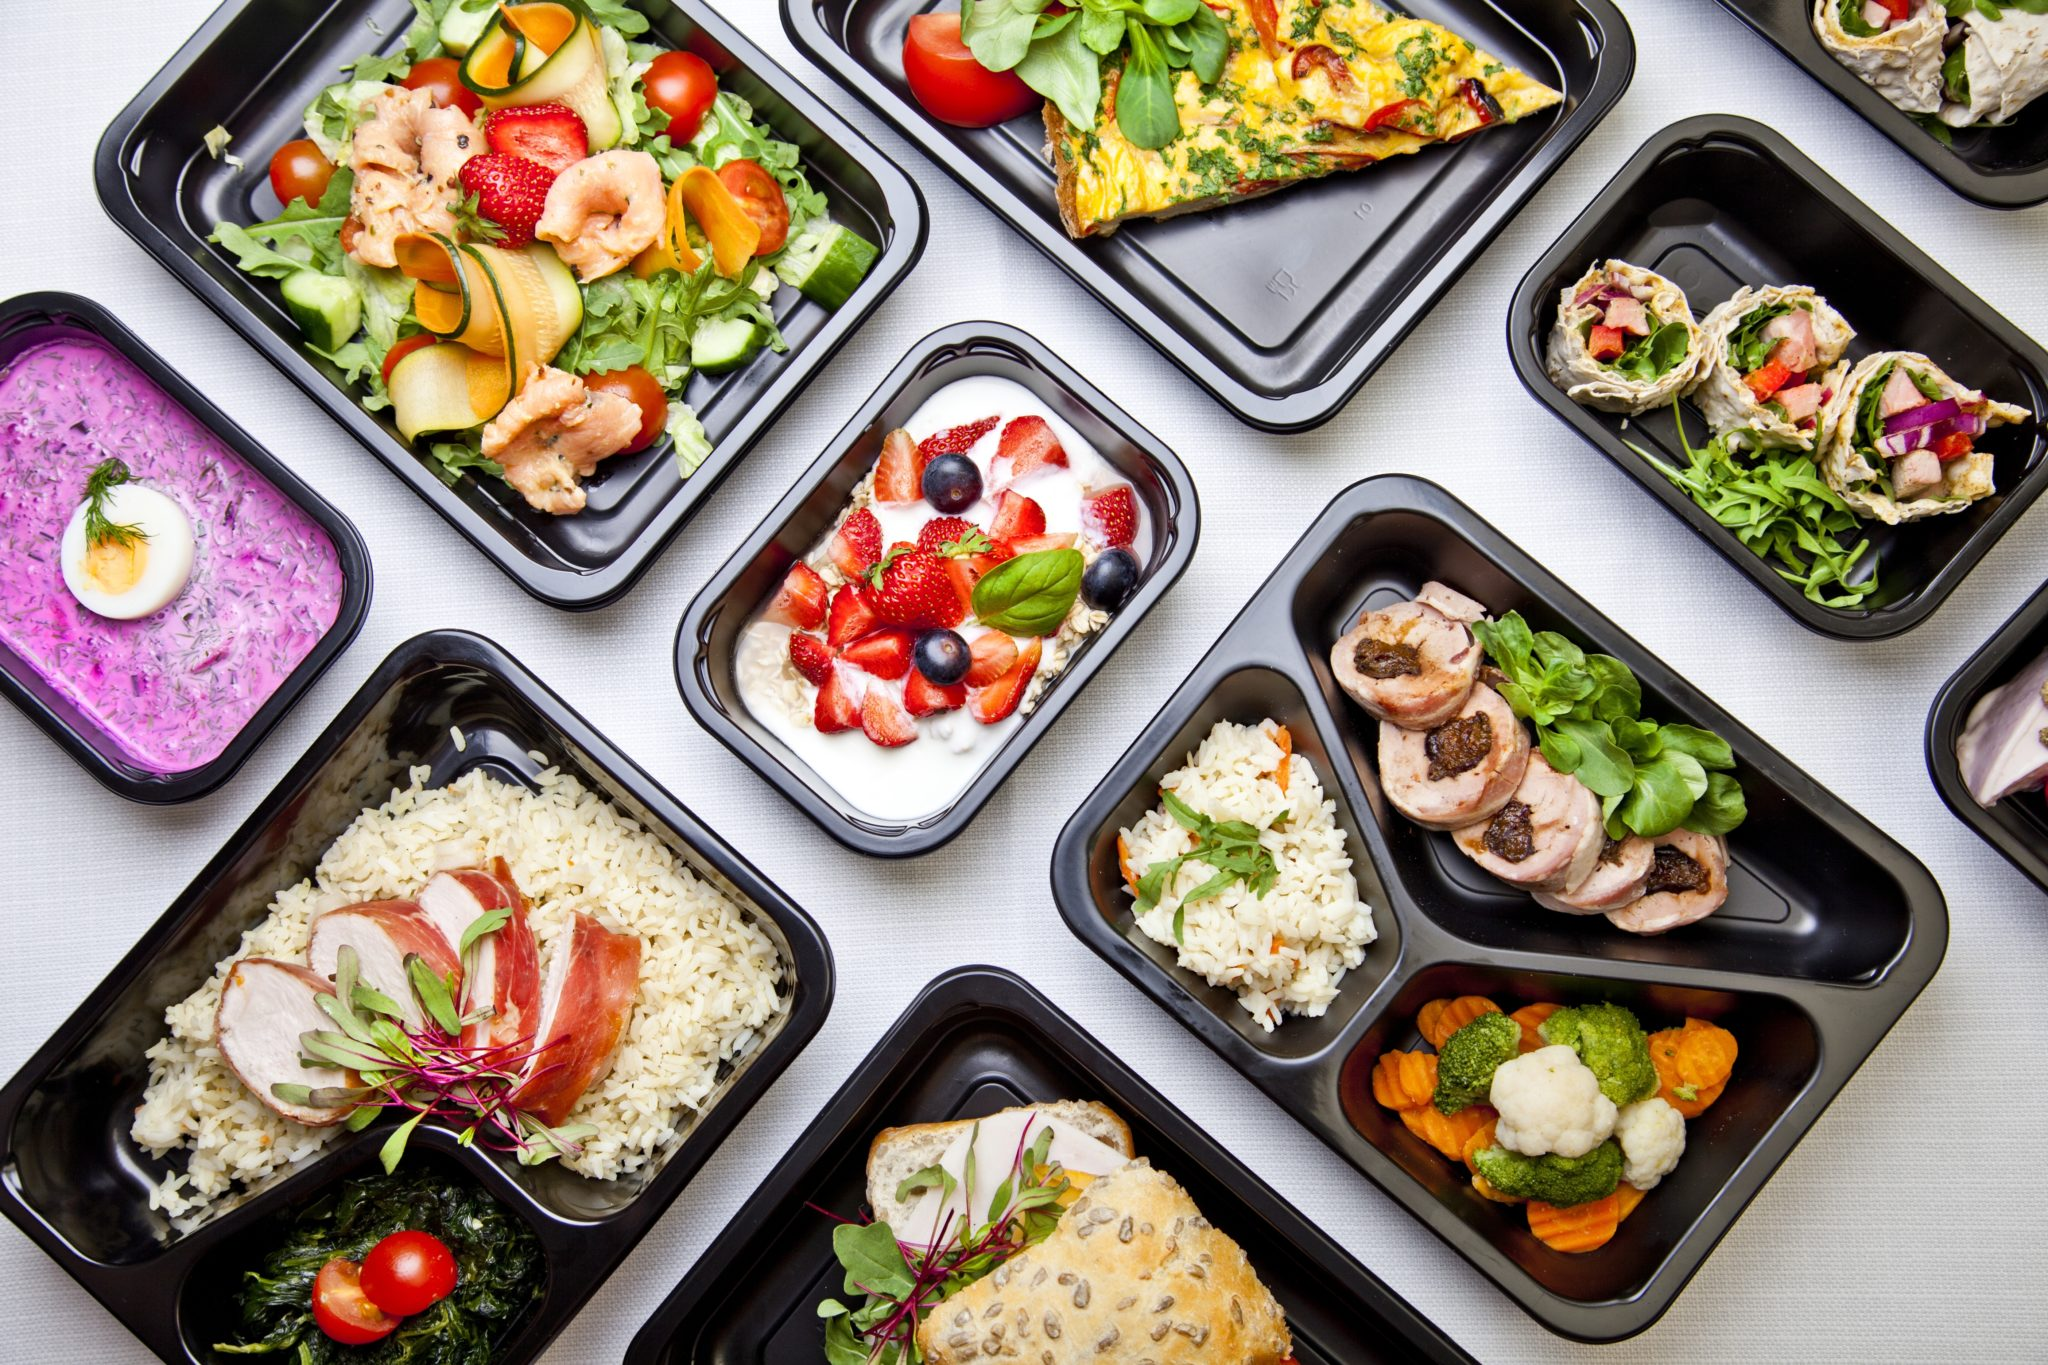 BOX CATERING FOR YOUR OFFICE